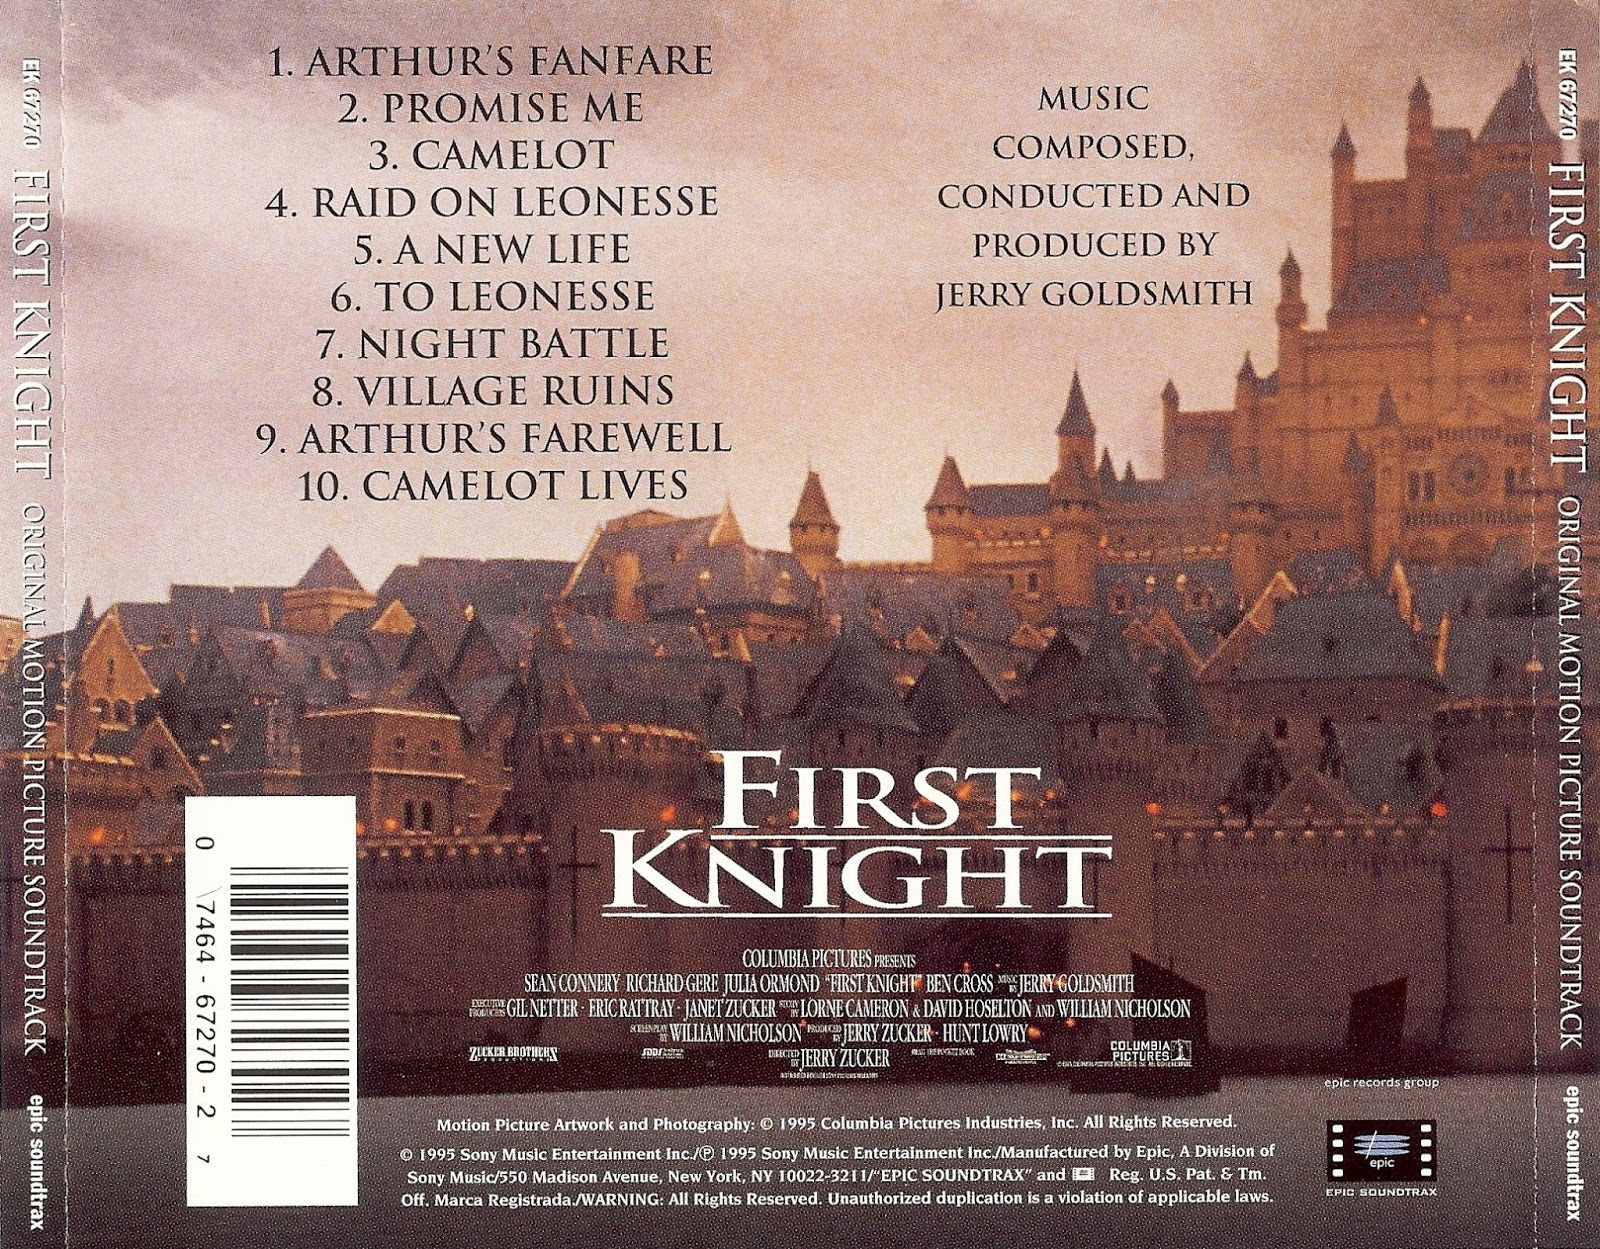 First Knight, Jerry Goldsmith